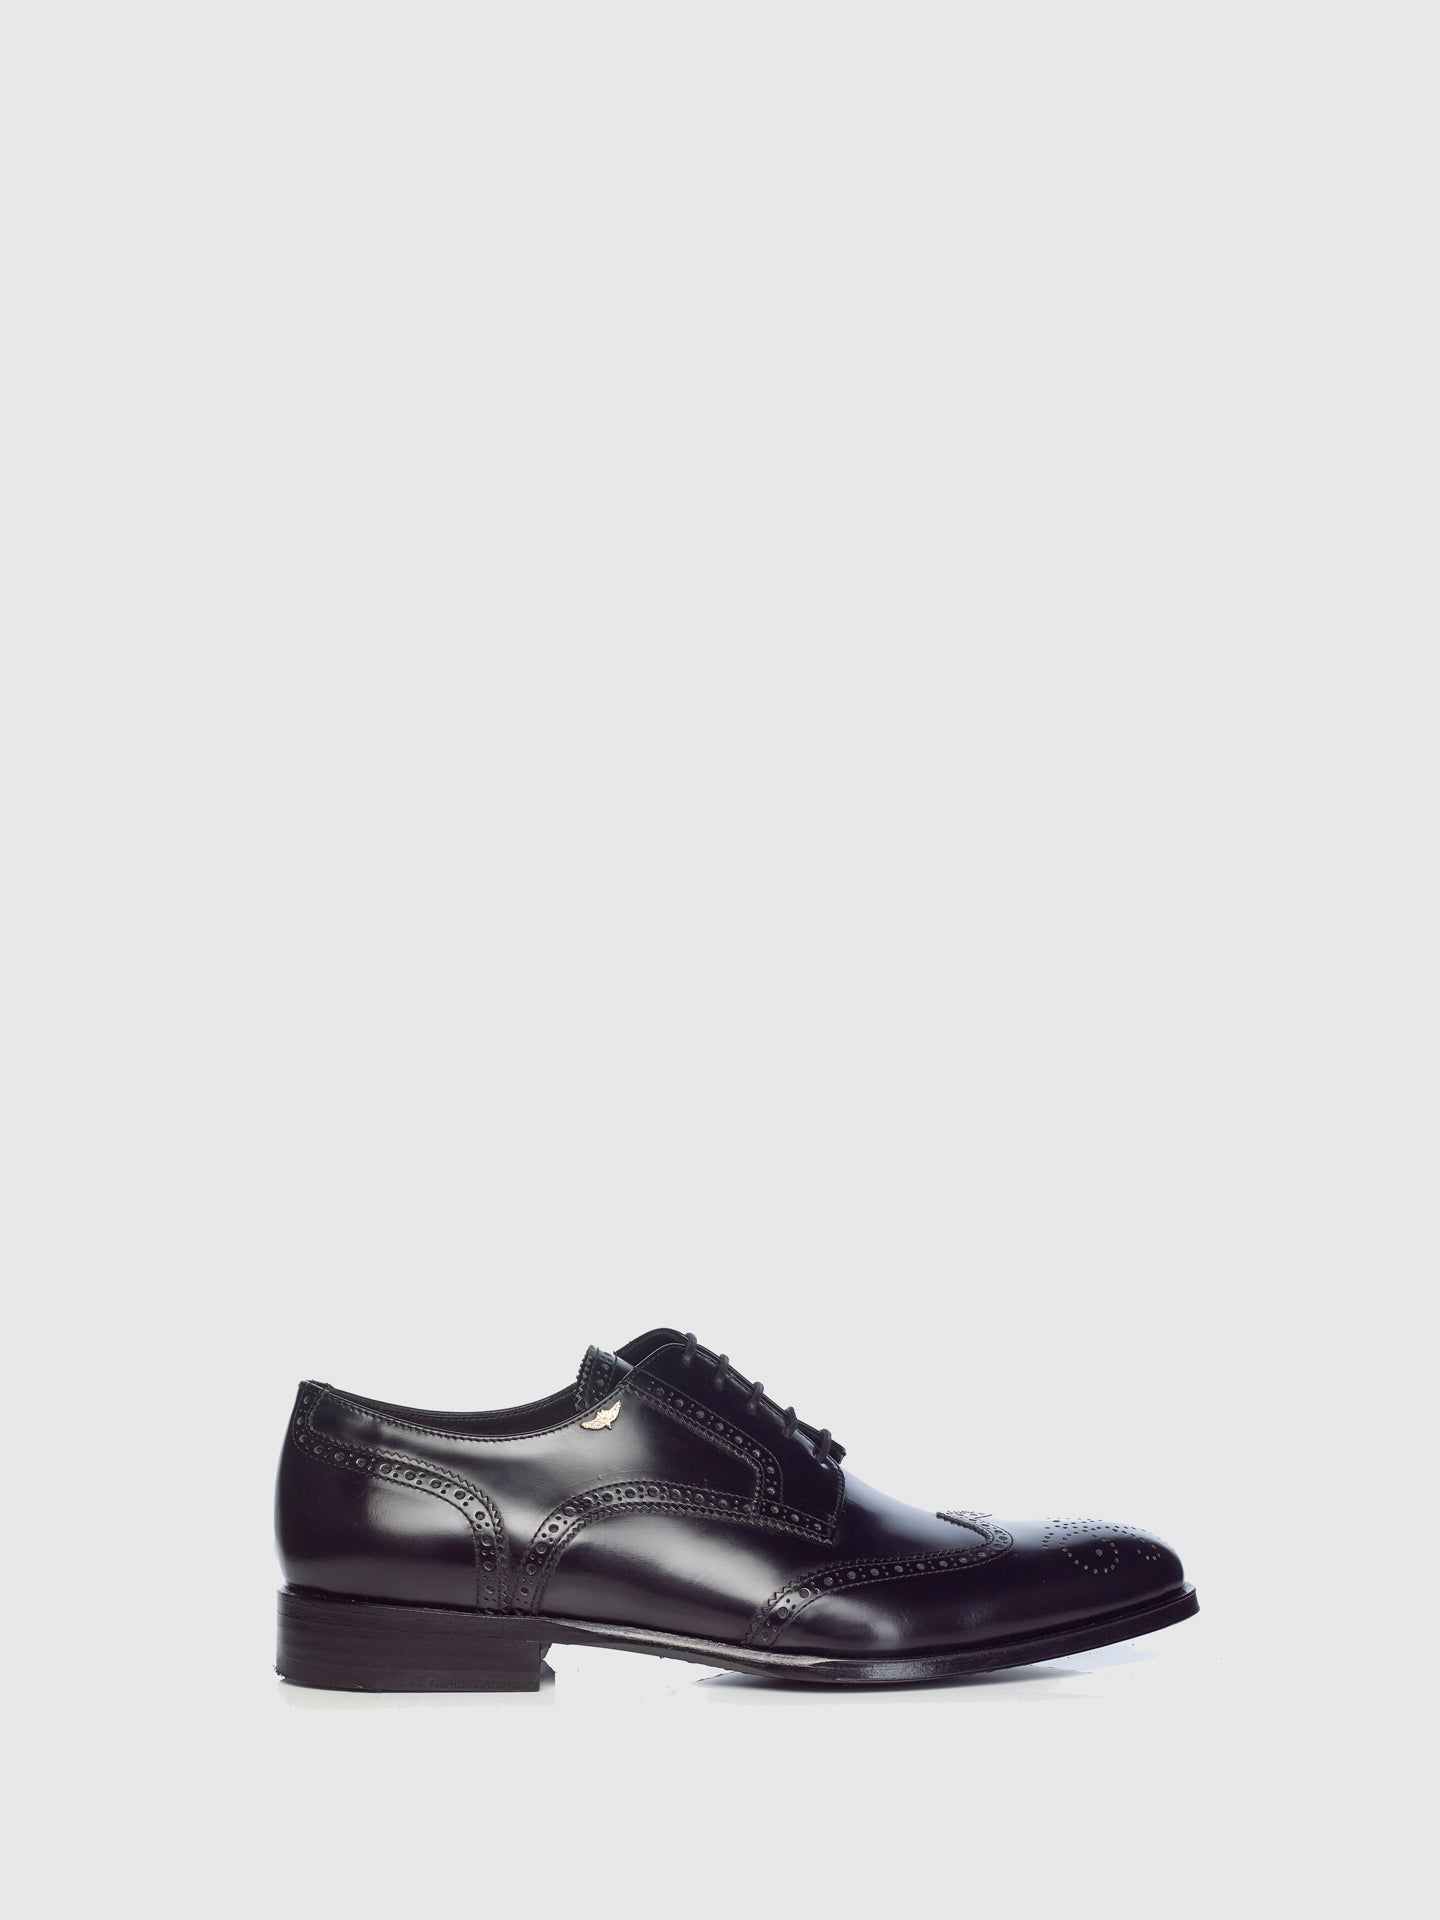 Miguel Vieira Black Derby Brogue Shoes